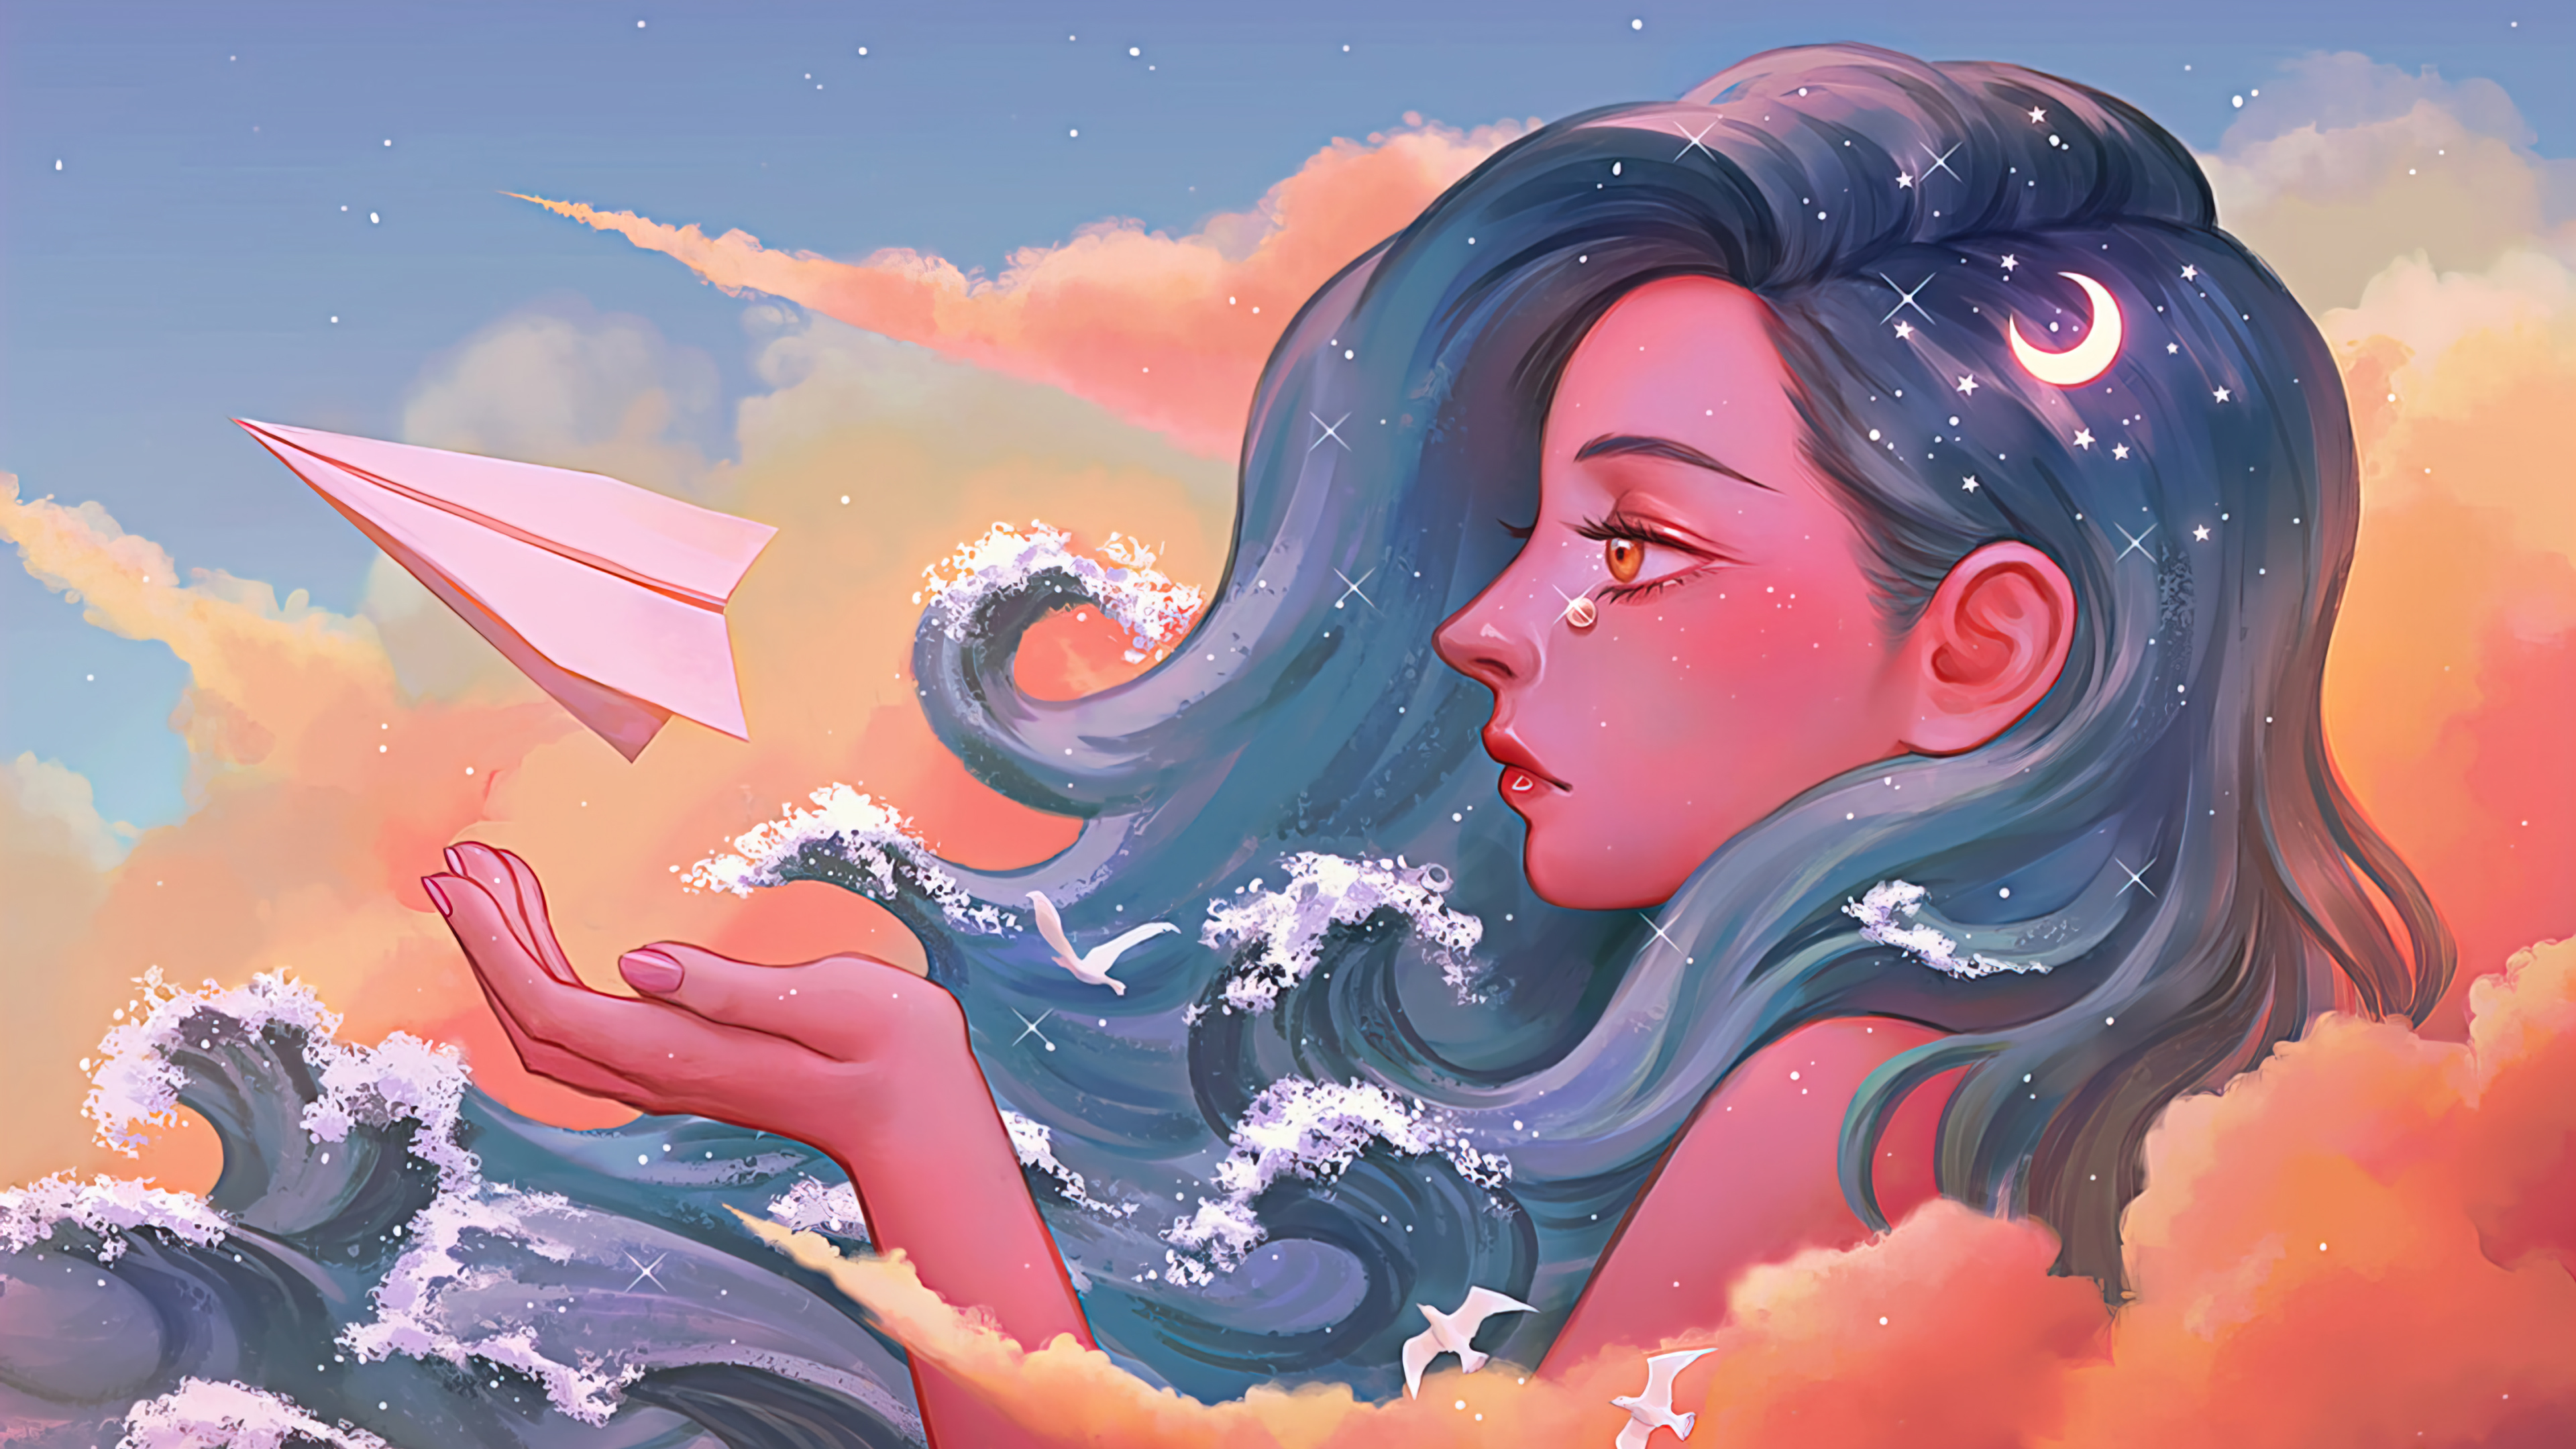 Wallpaper Girl with hair as waves and paper plane